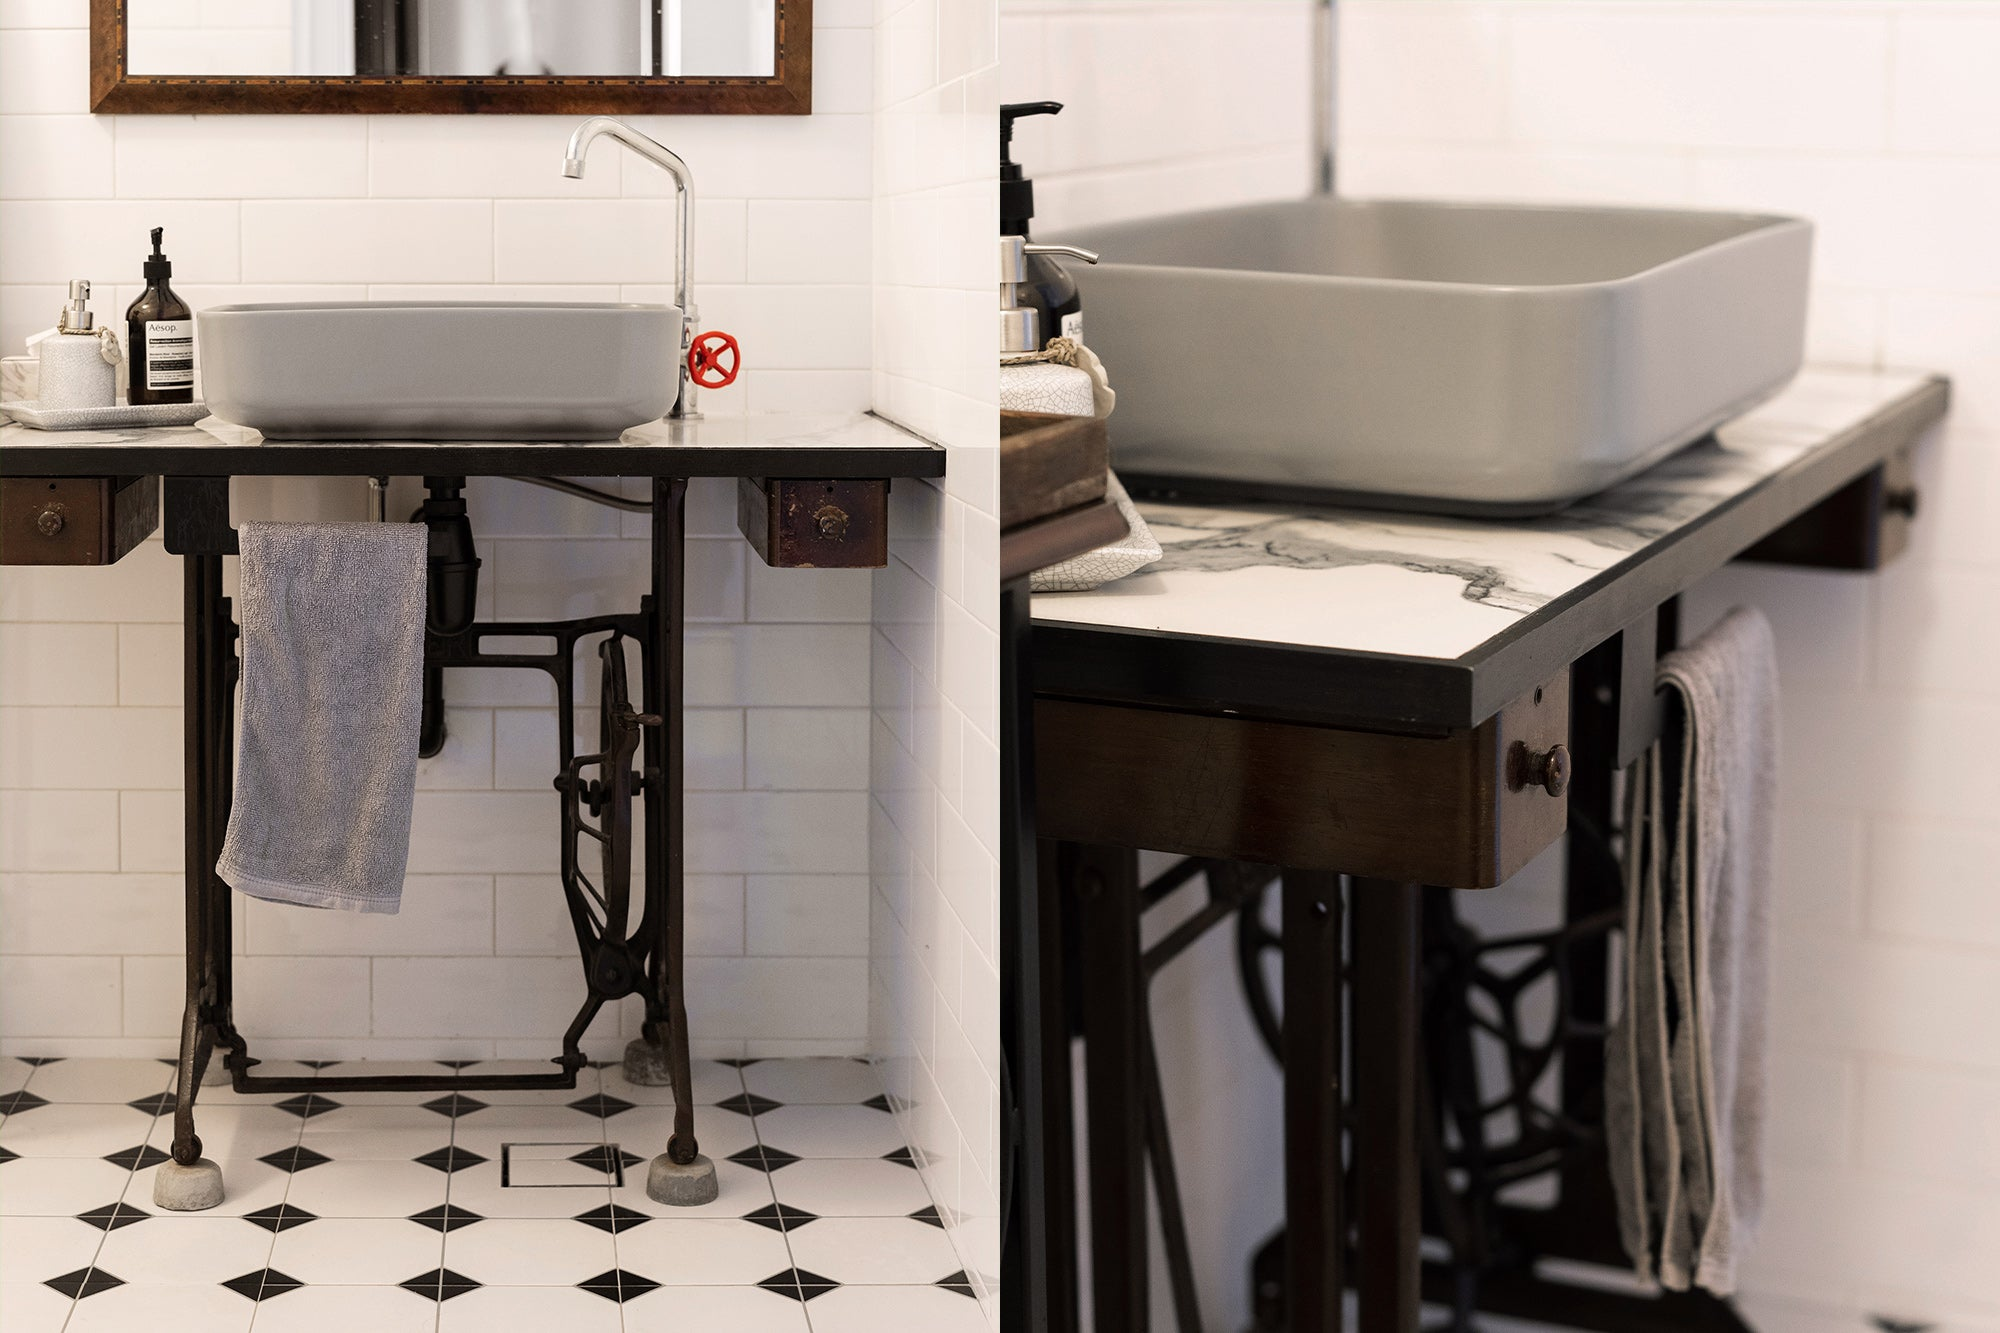 Singer sewing machine upcycle diy interior sink table top singapore ecofriendly